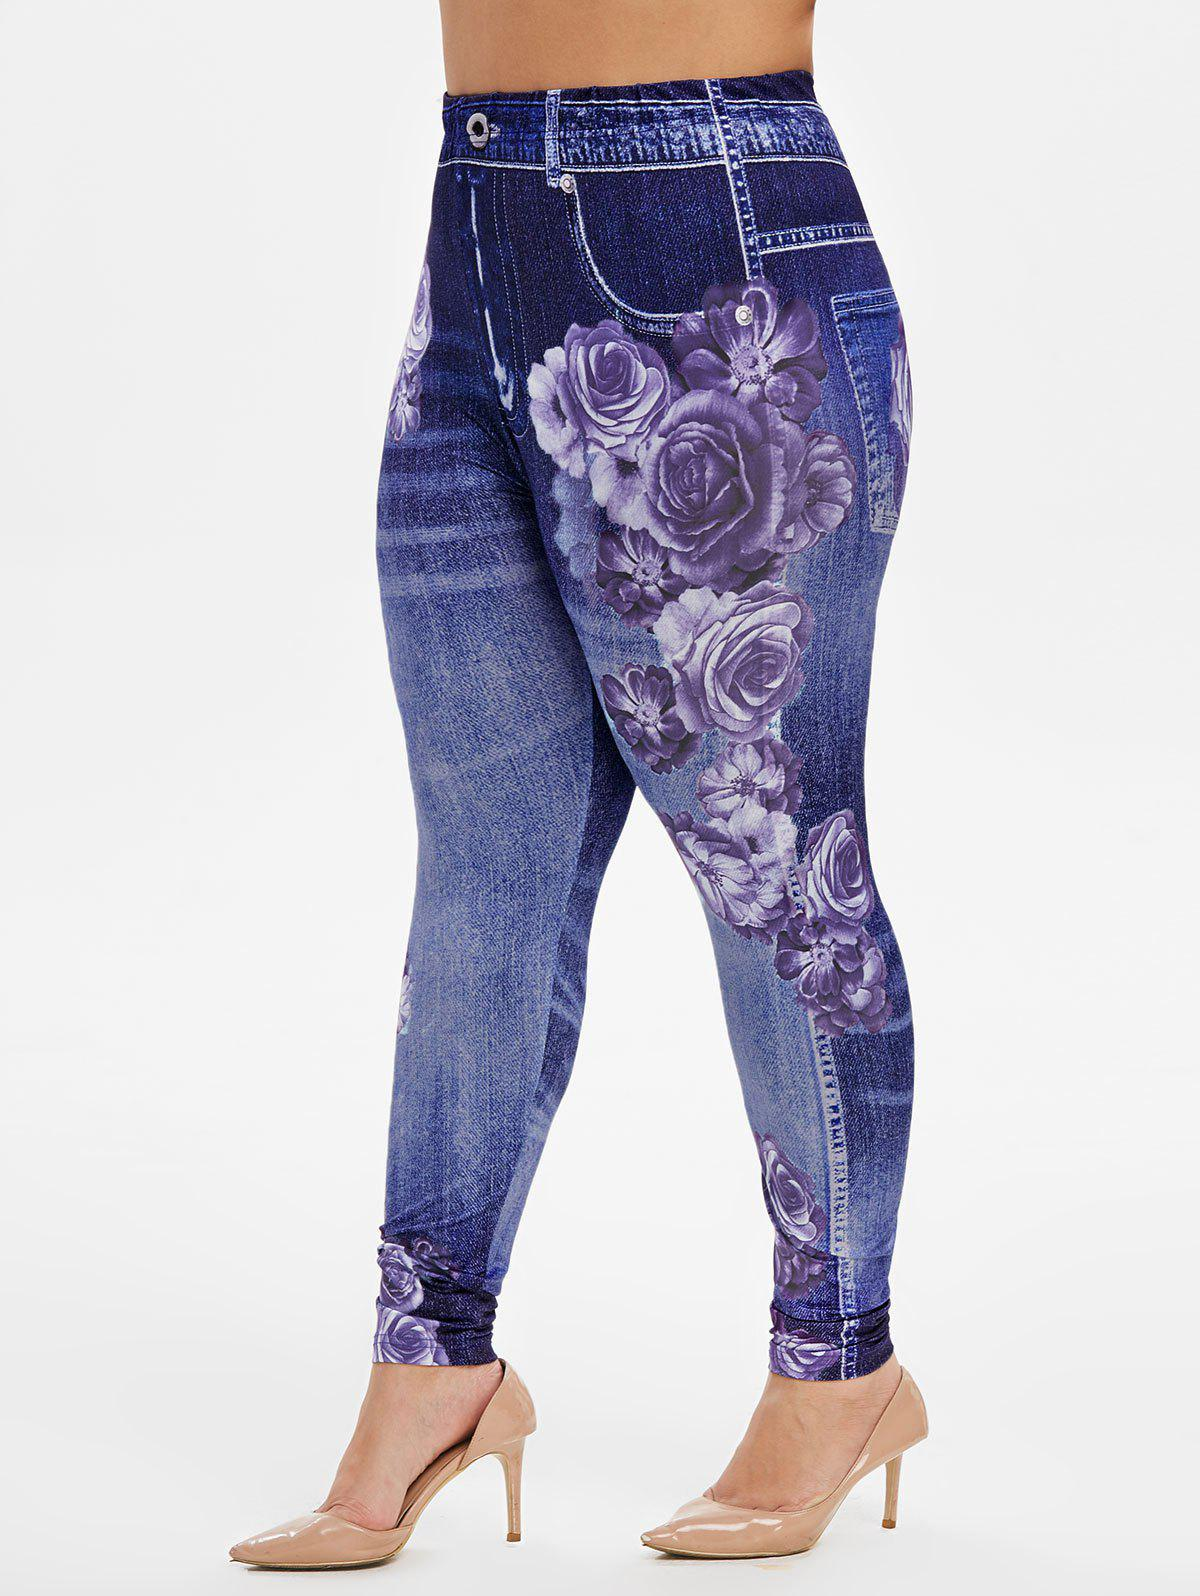 New Plus Size High Rise Floral Gym 3D Jeggings